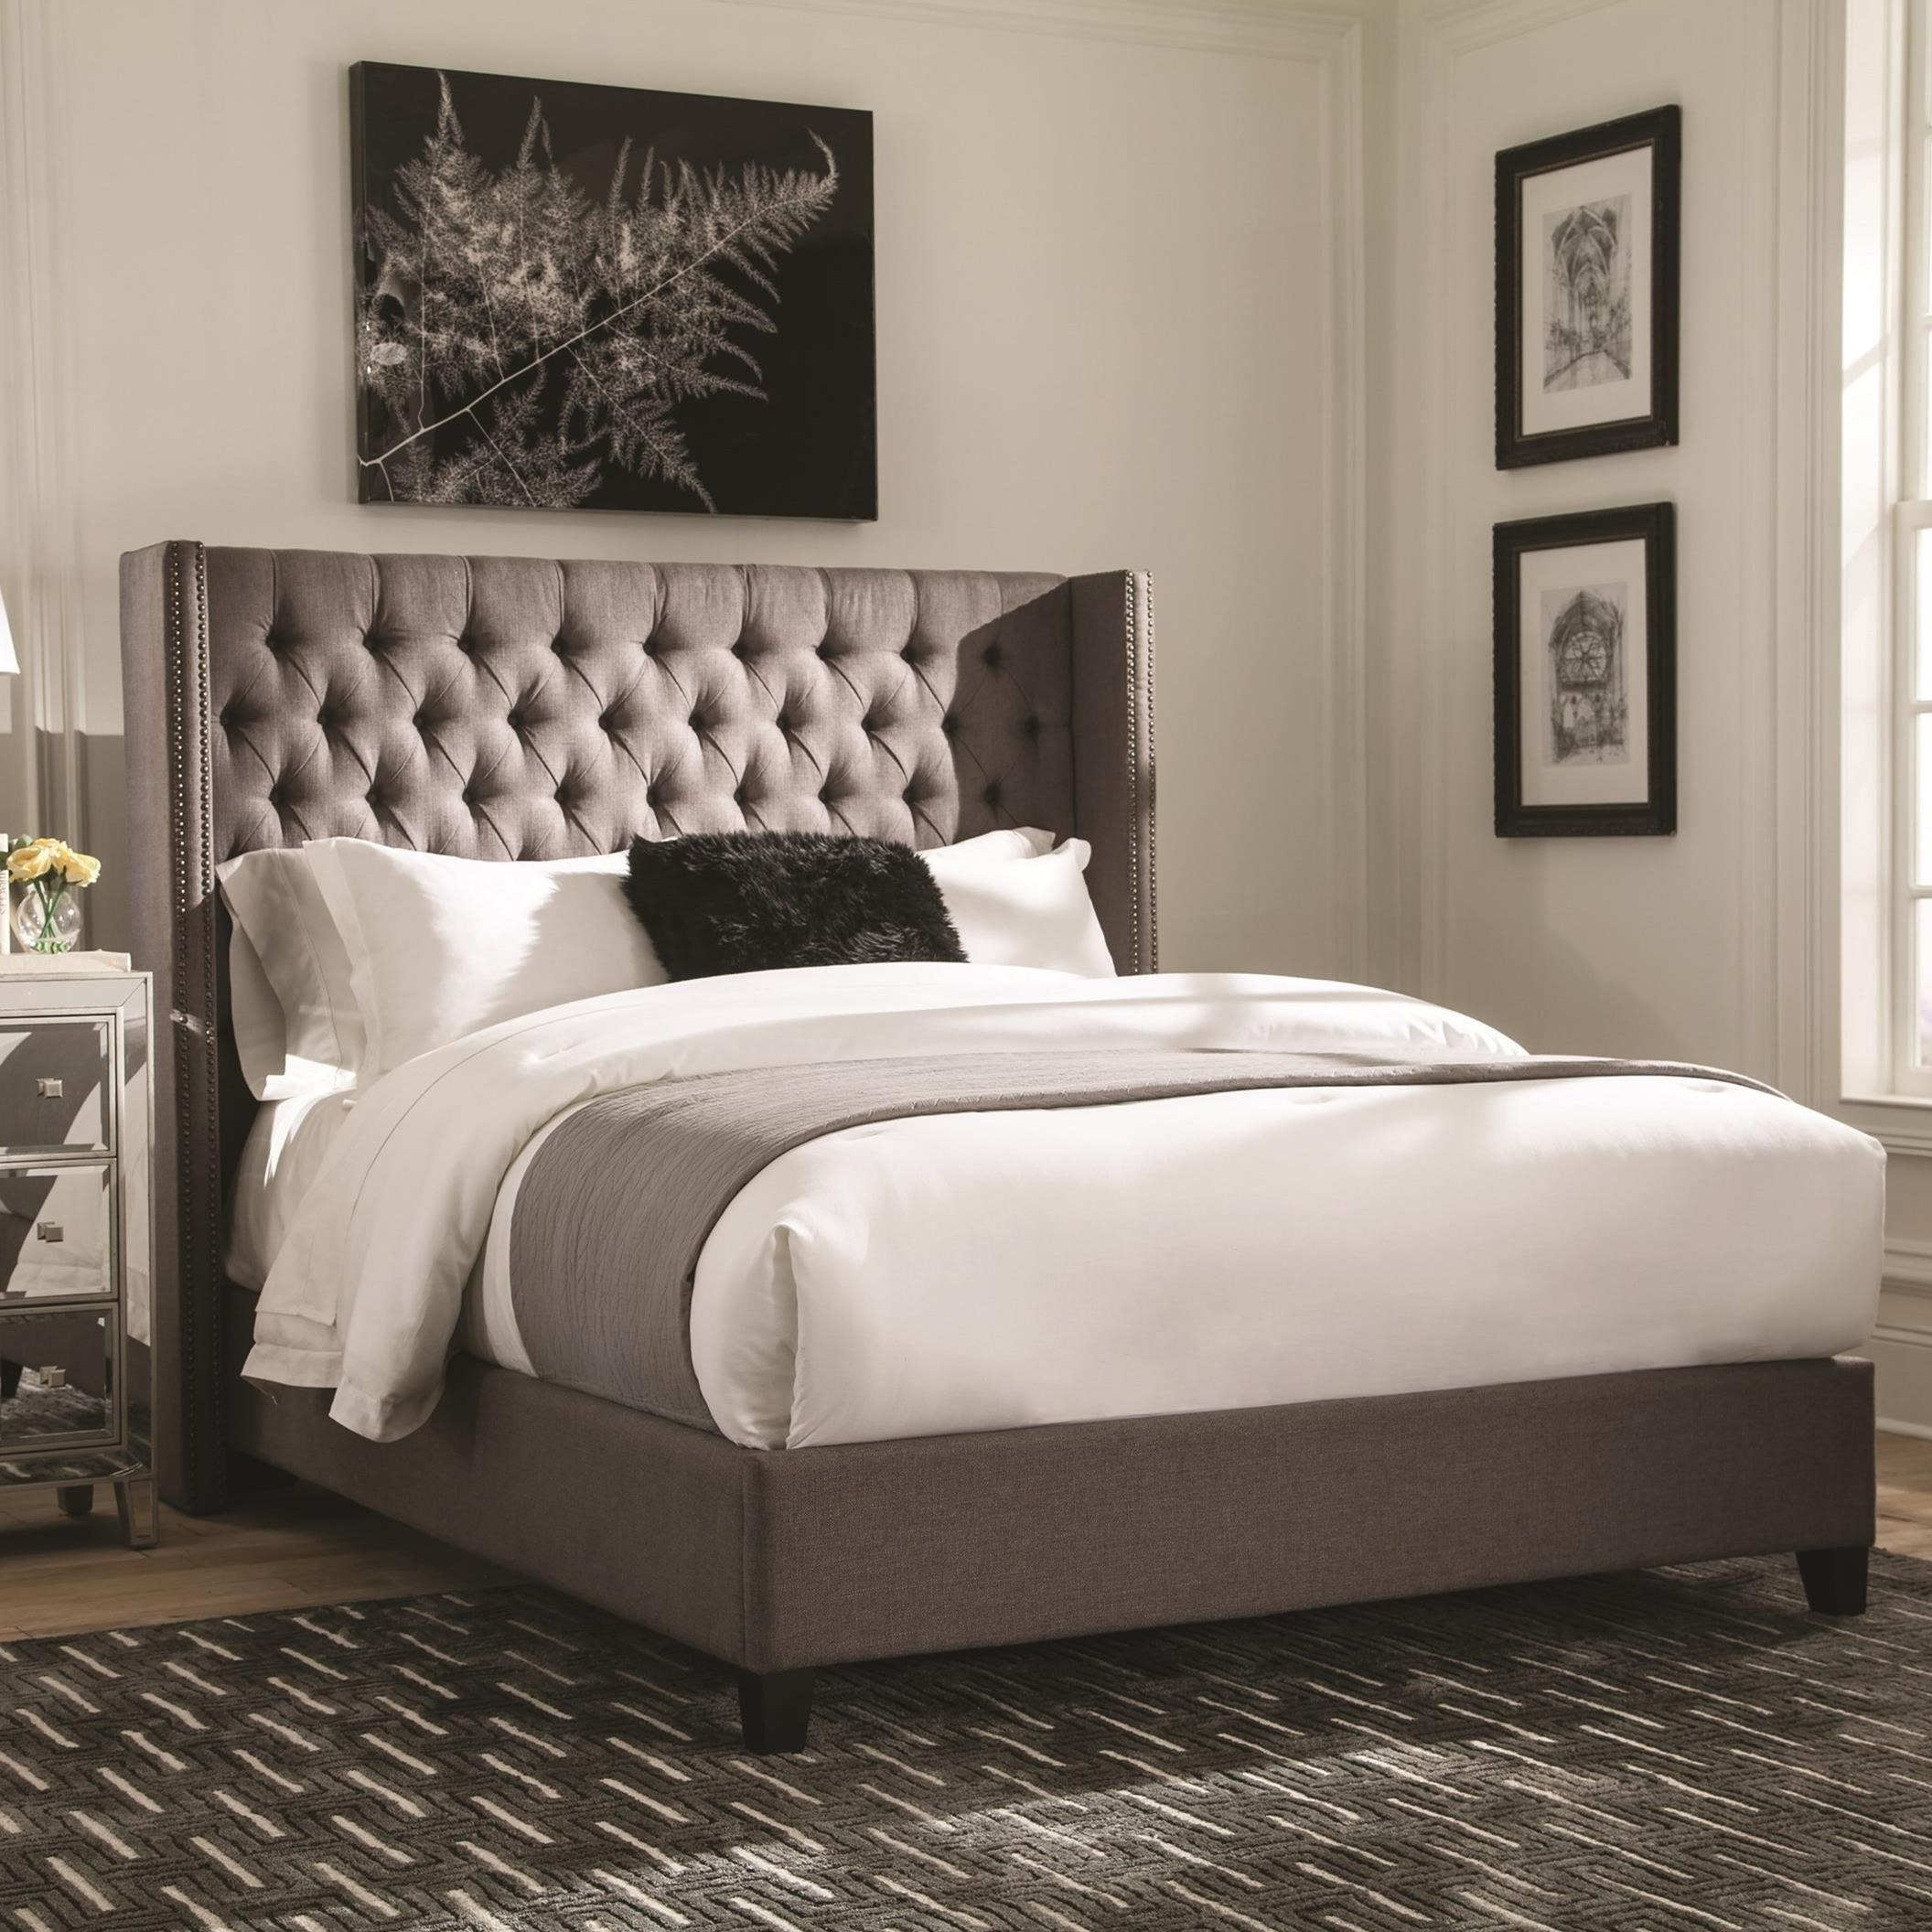 Furniture Stores Near Me Bed Frames